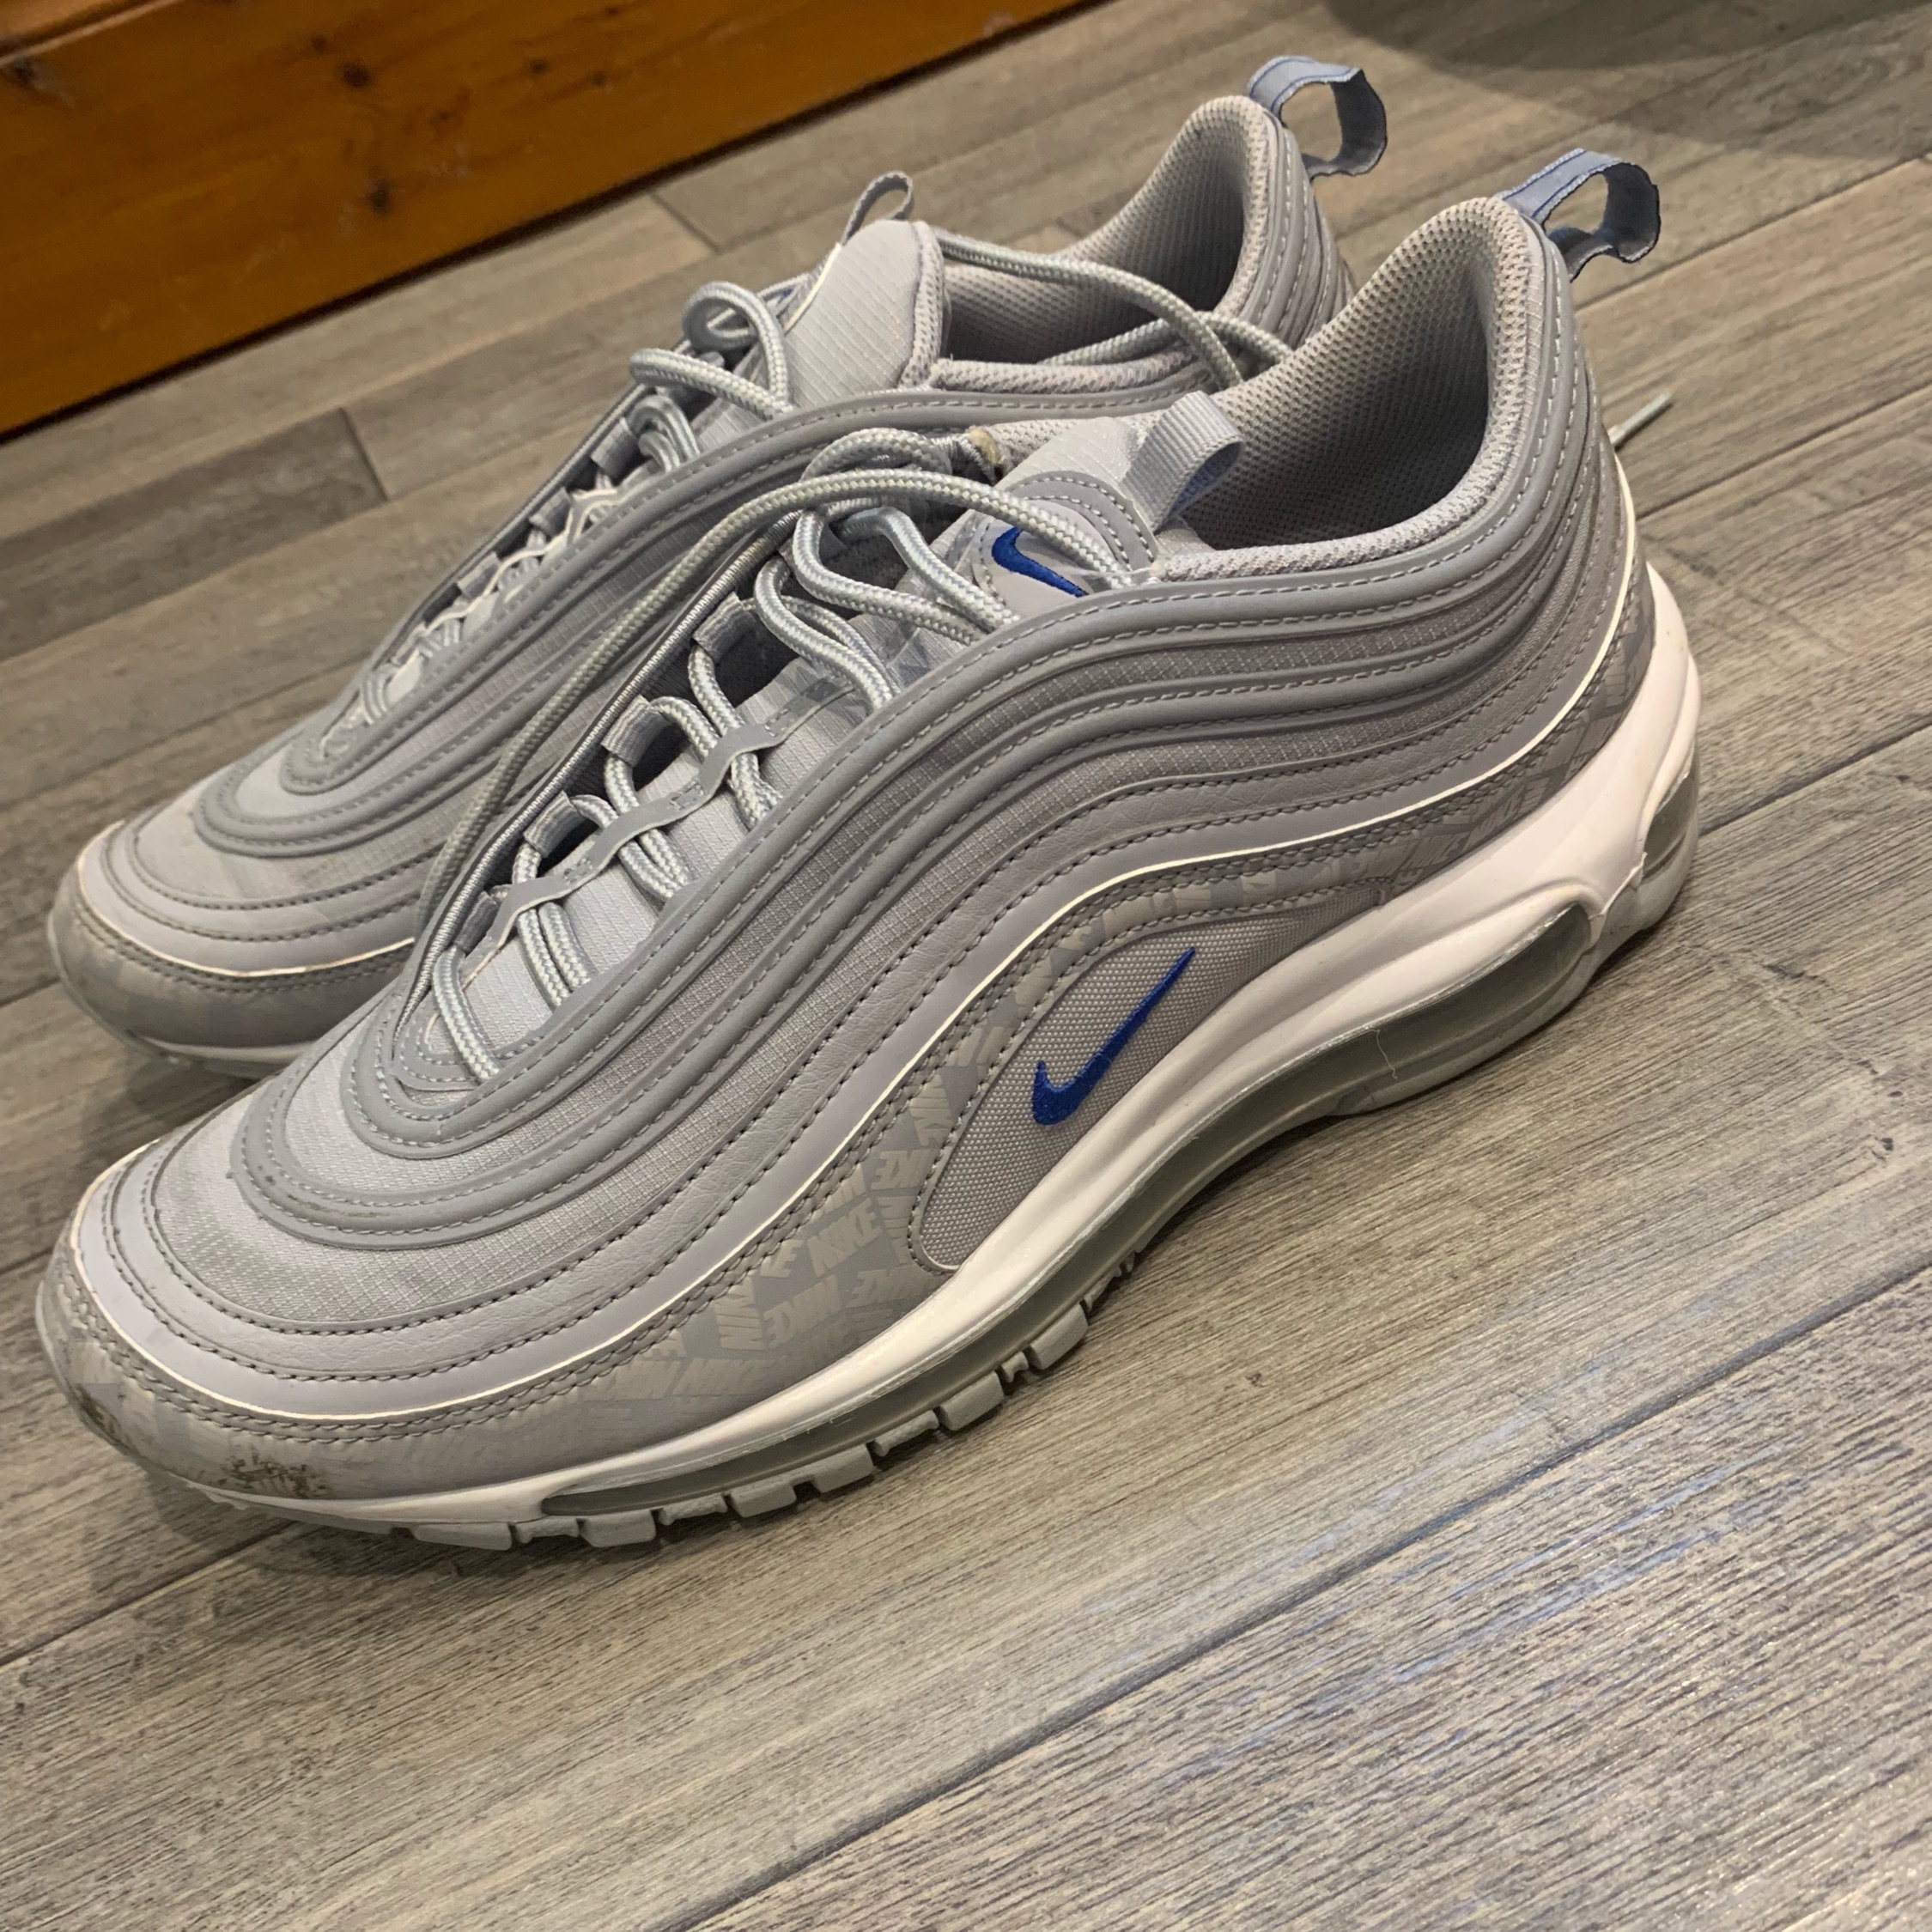 Nike Air Max 97 Silver Bullet UK 7 for sale online eBay